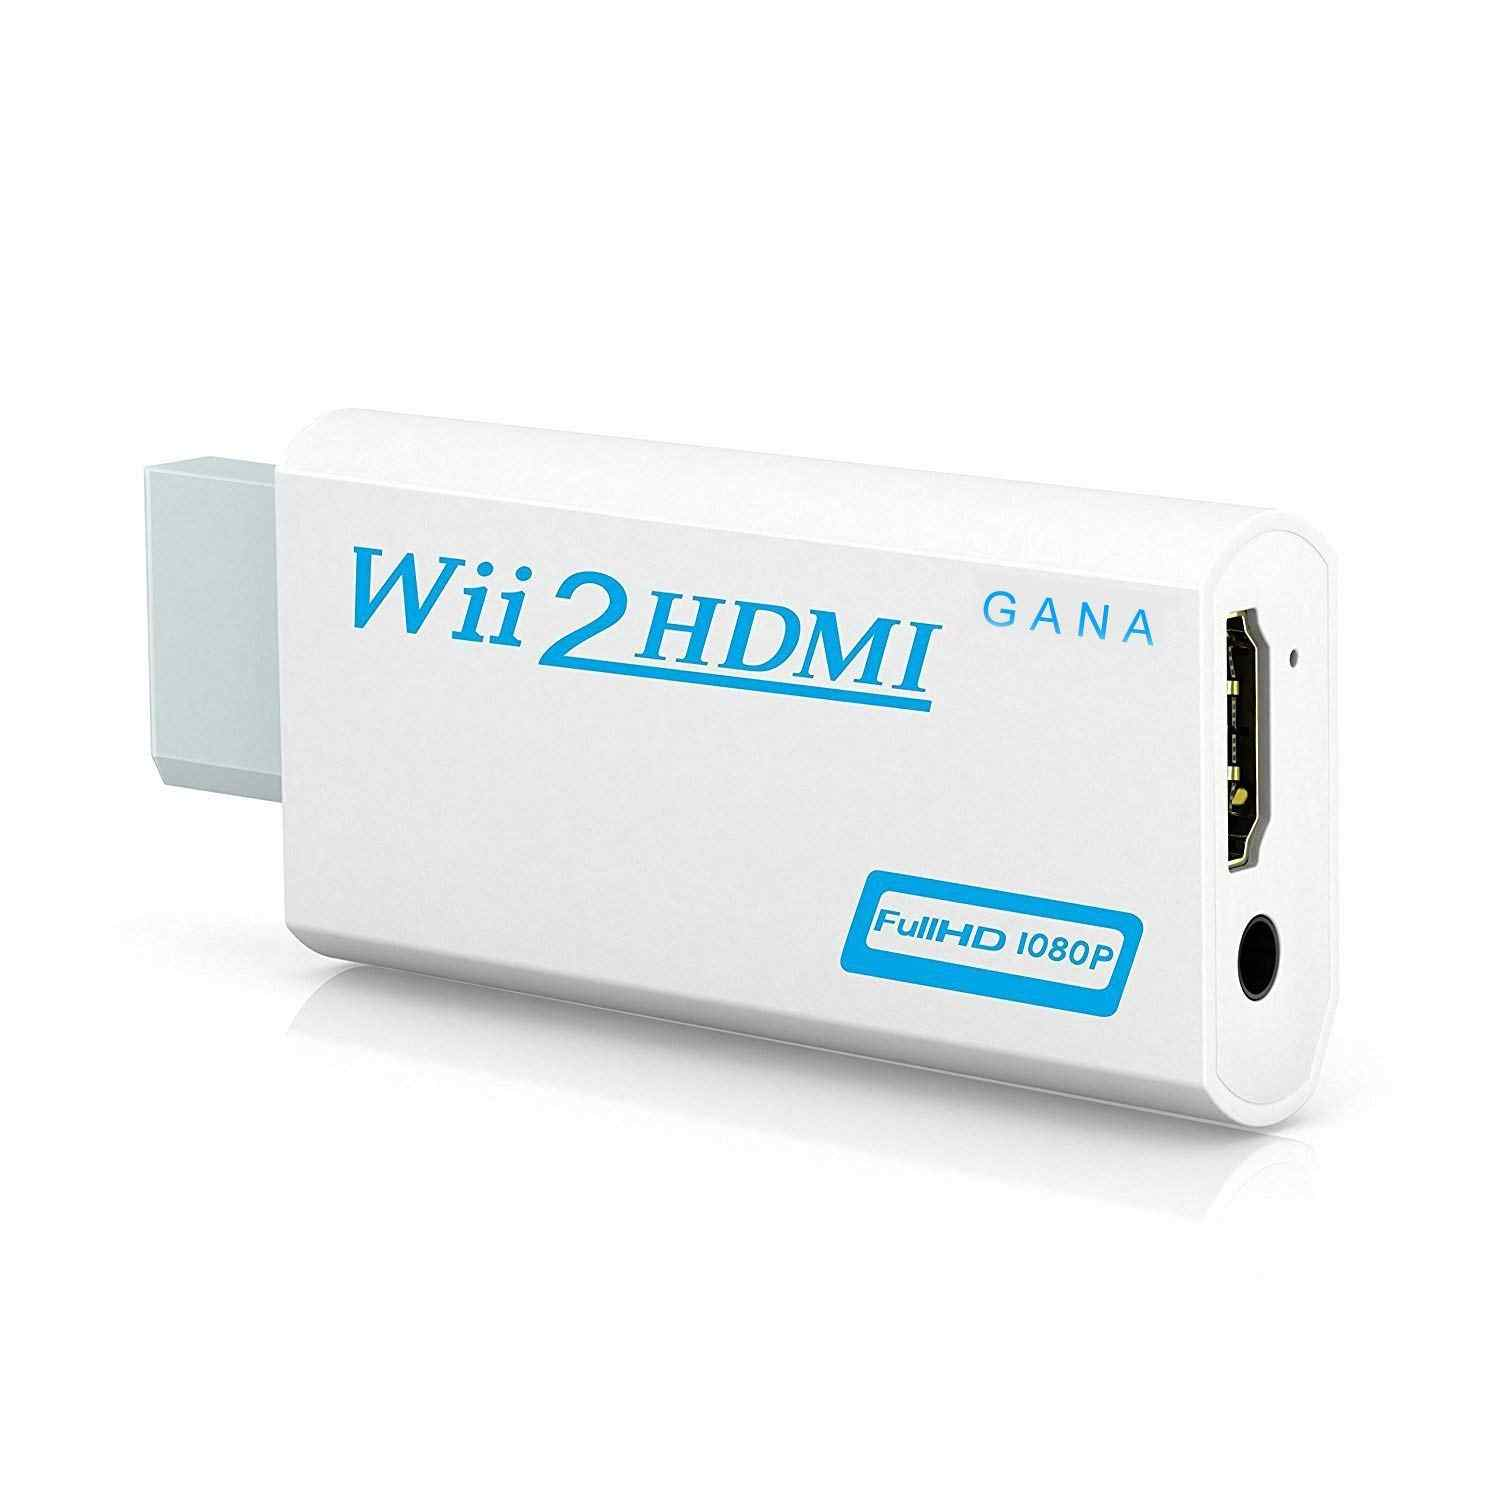 Full HD 1080P Wii untuk HDMI Konverter Adaptor Wii2HDMI Konverter 3.5 Mm Audio untuk PC HDTV Monitor Display